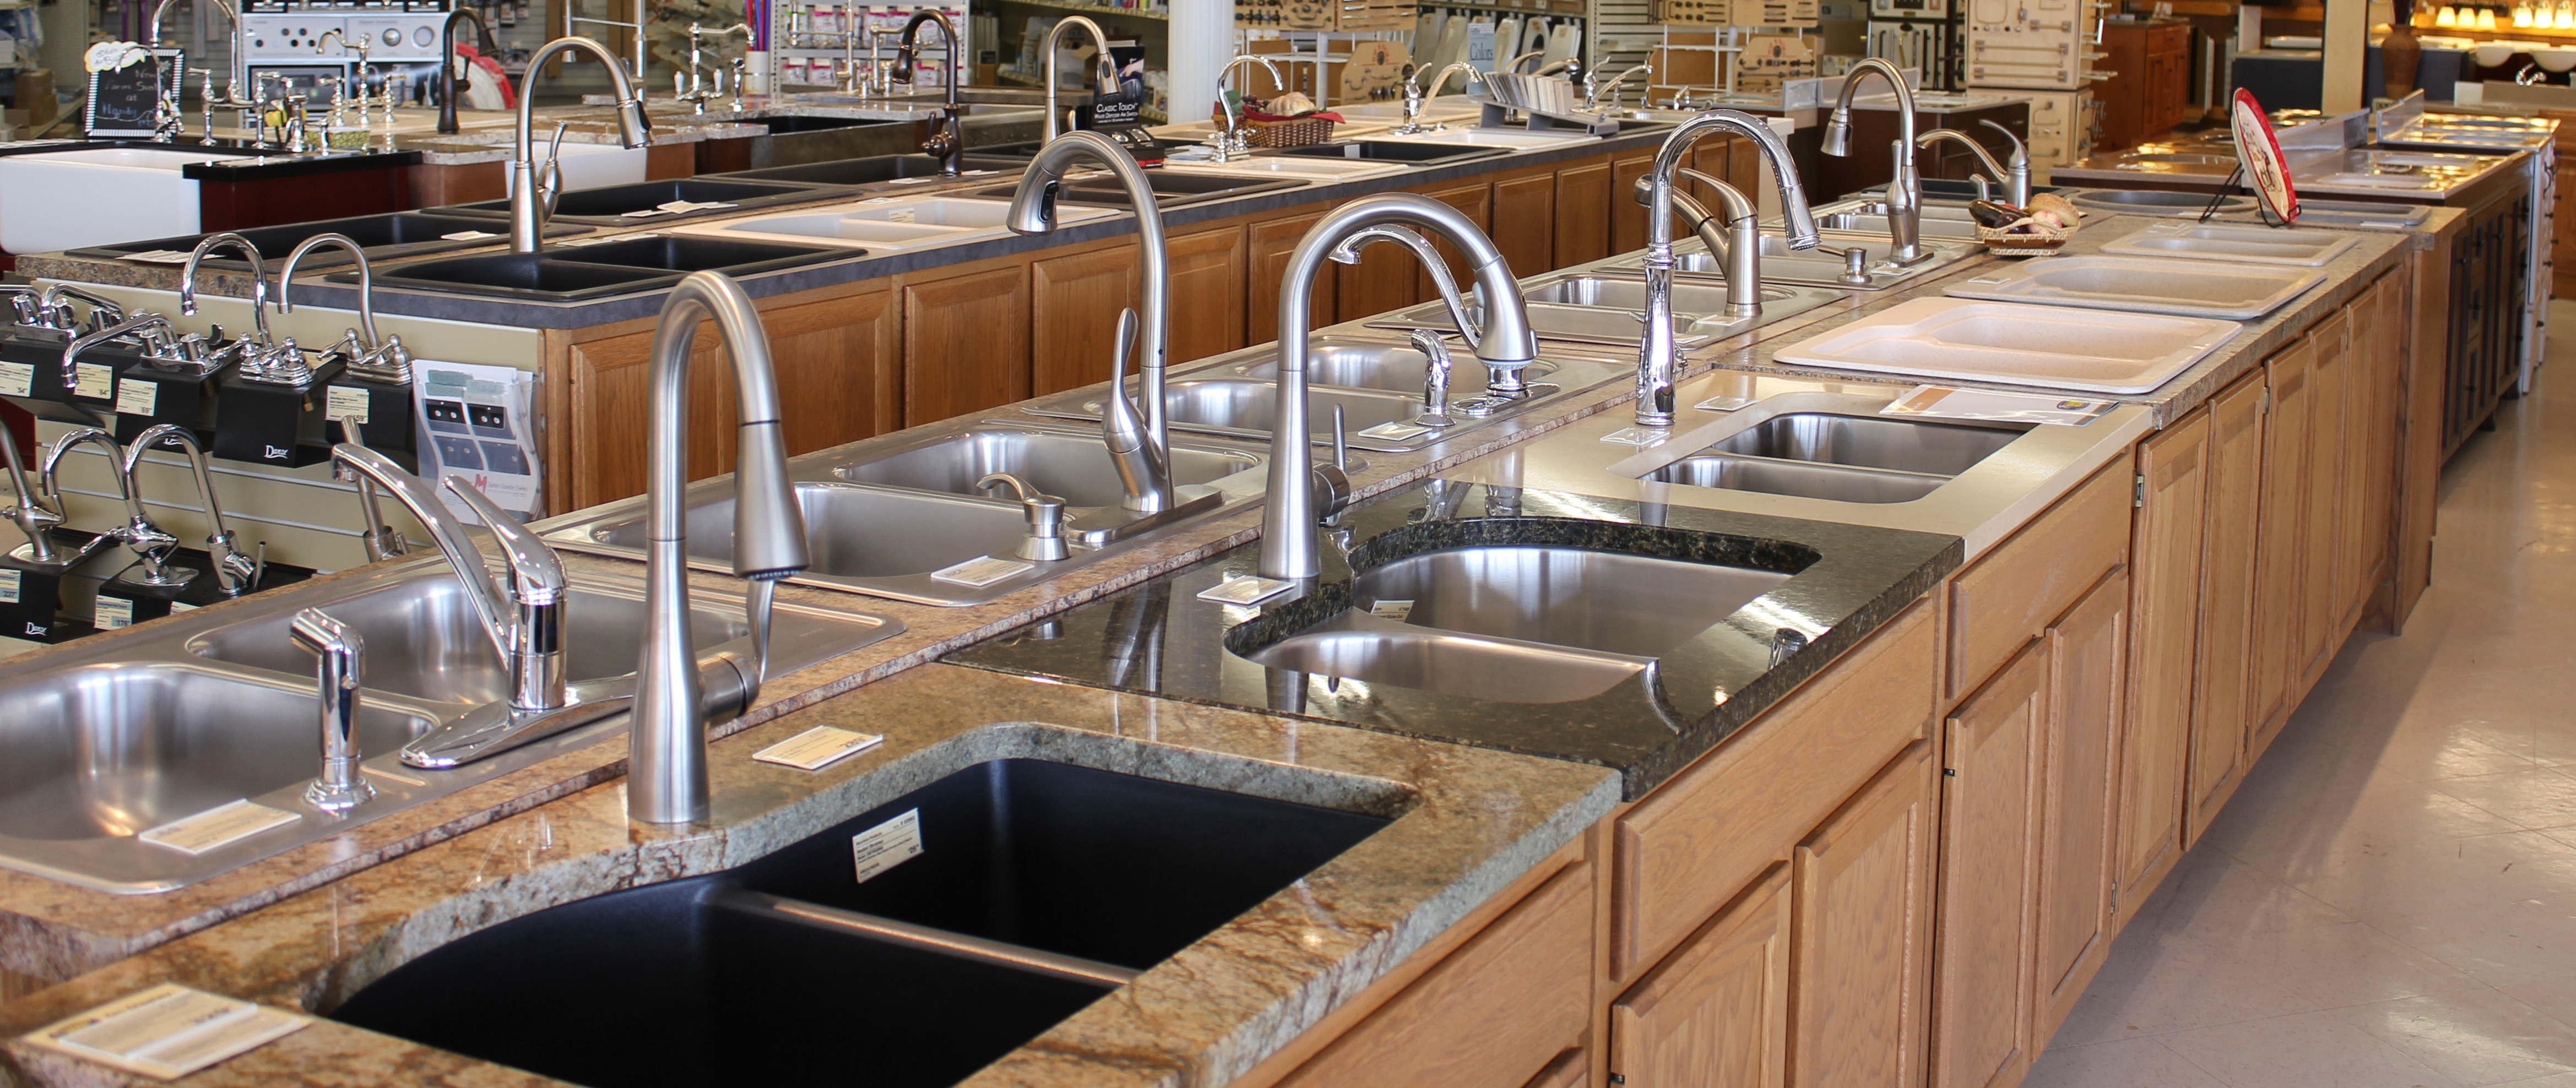 kitchen bathroom faucets all on sale in july kitchen sinks for sale Kitchen Bathroom Faucets All on Sale in July